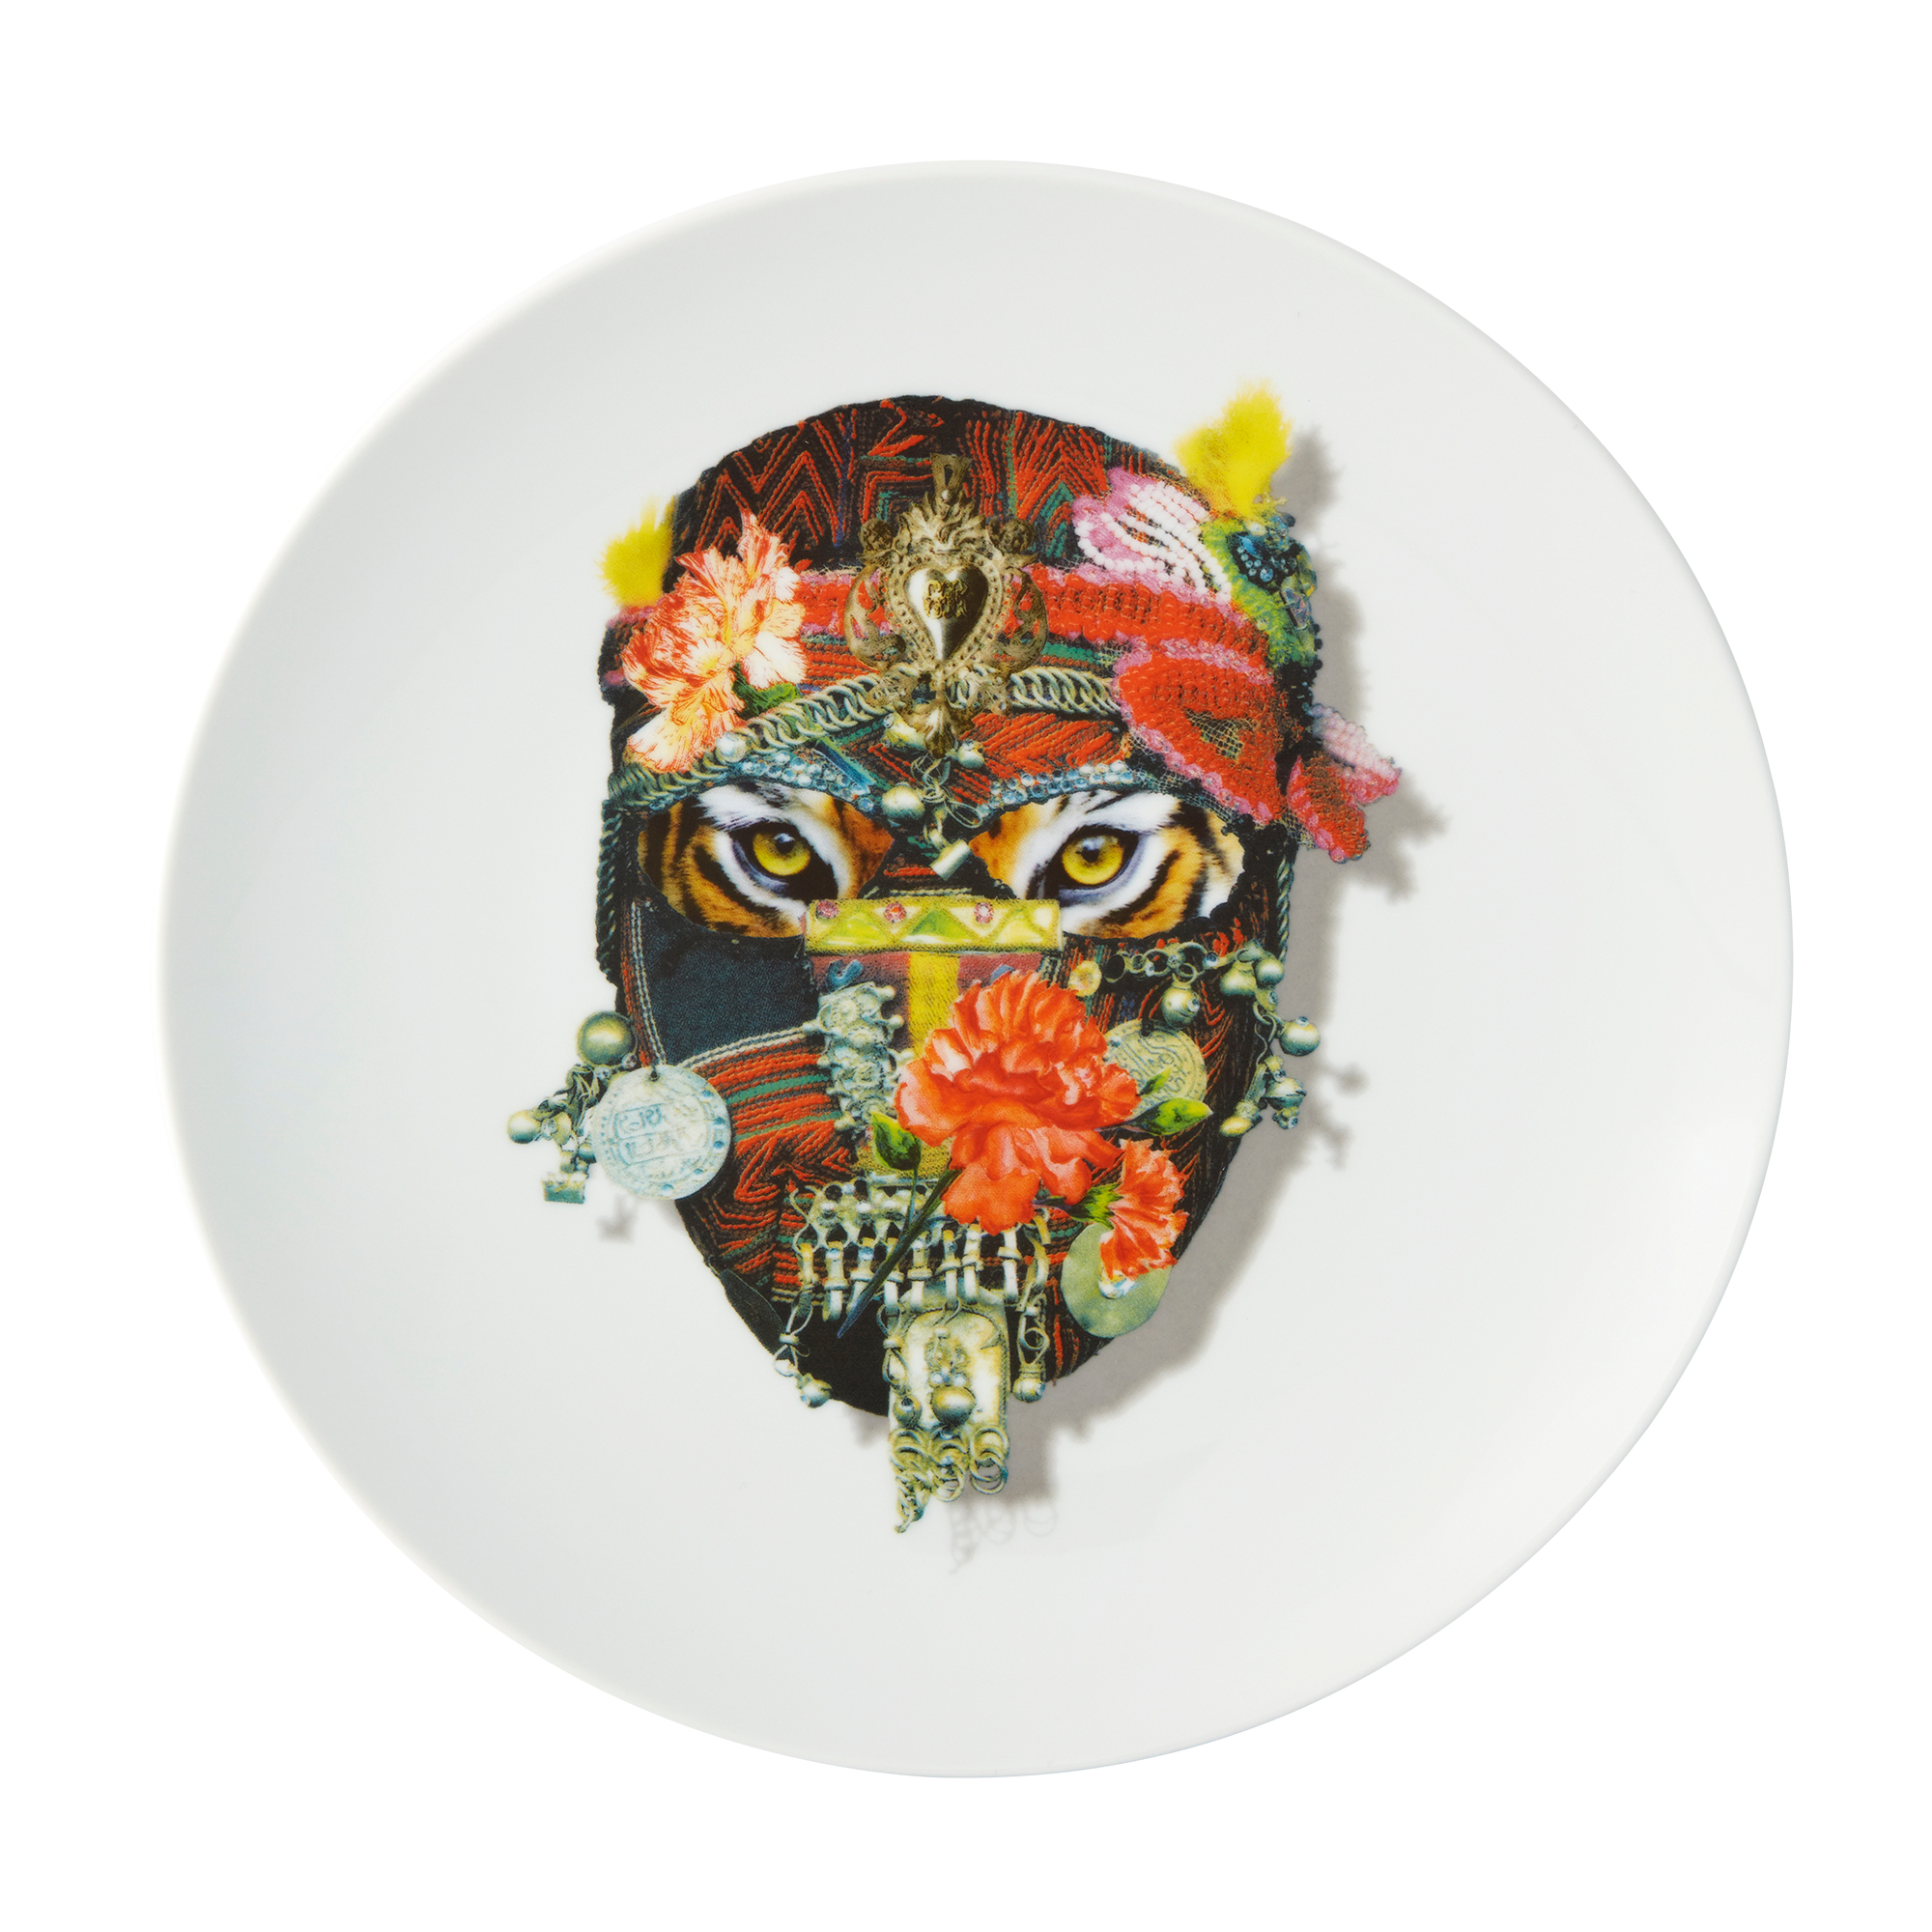 Christian Lacroix Maison Love Who You Want Dessert Plate, Mister Tiger